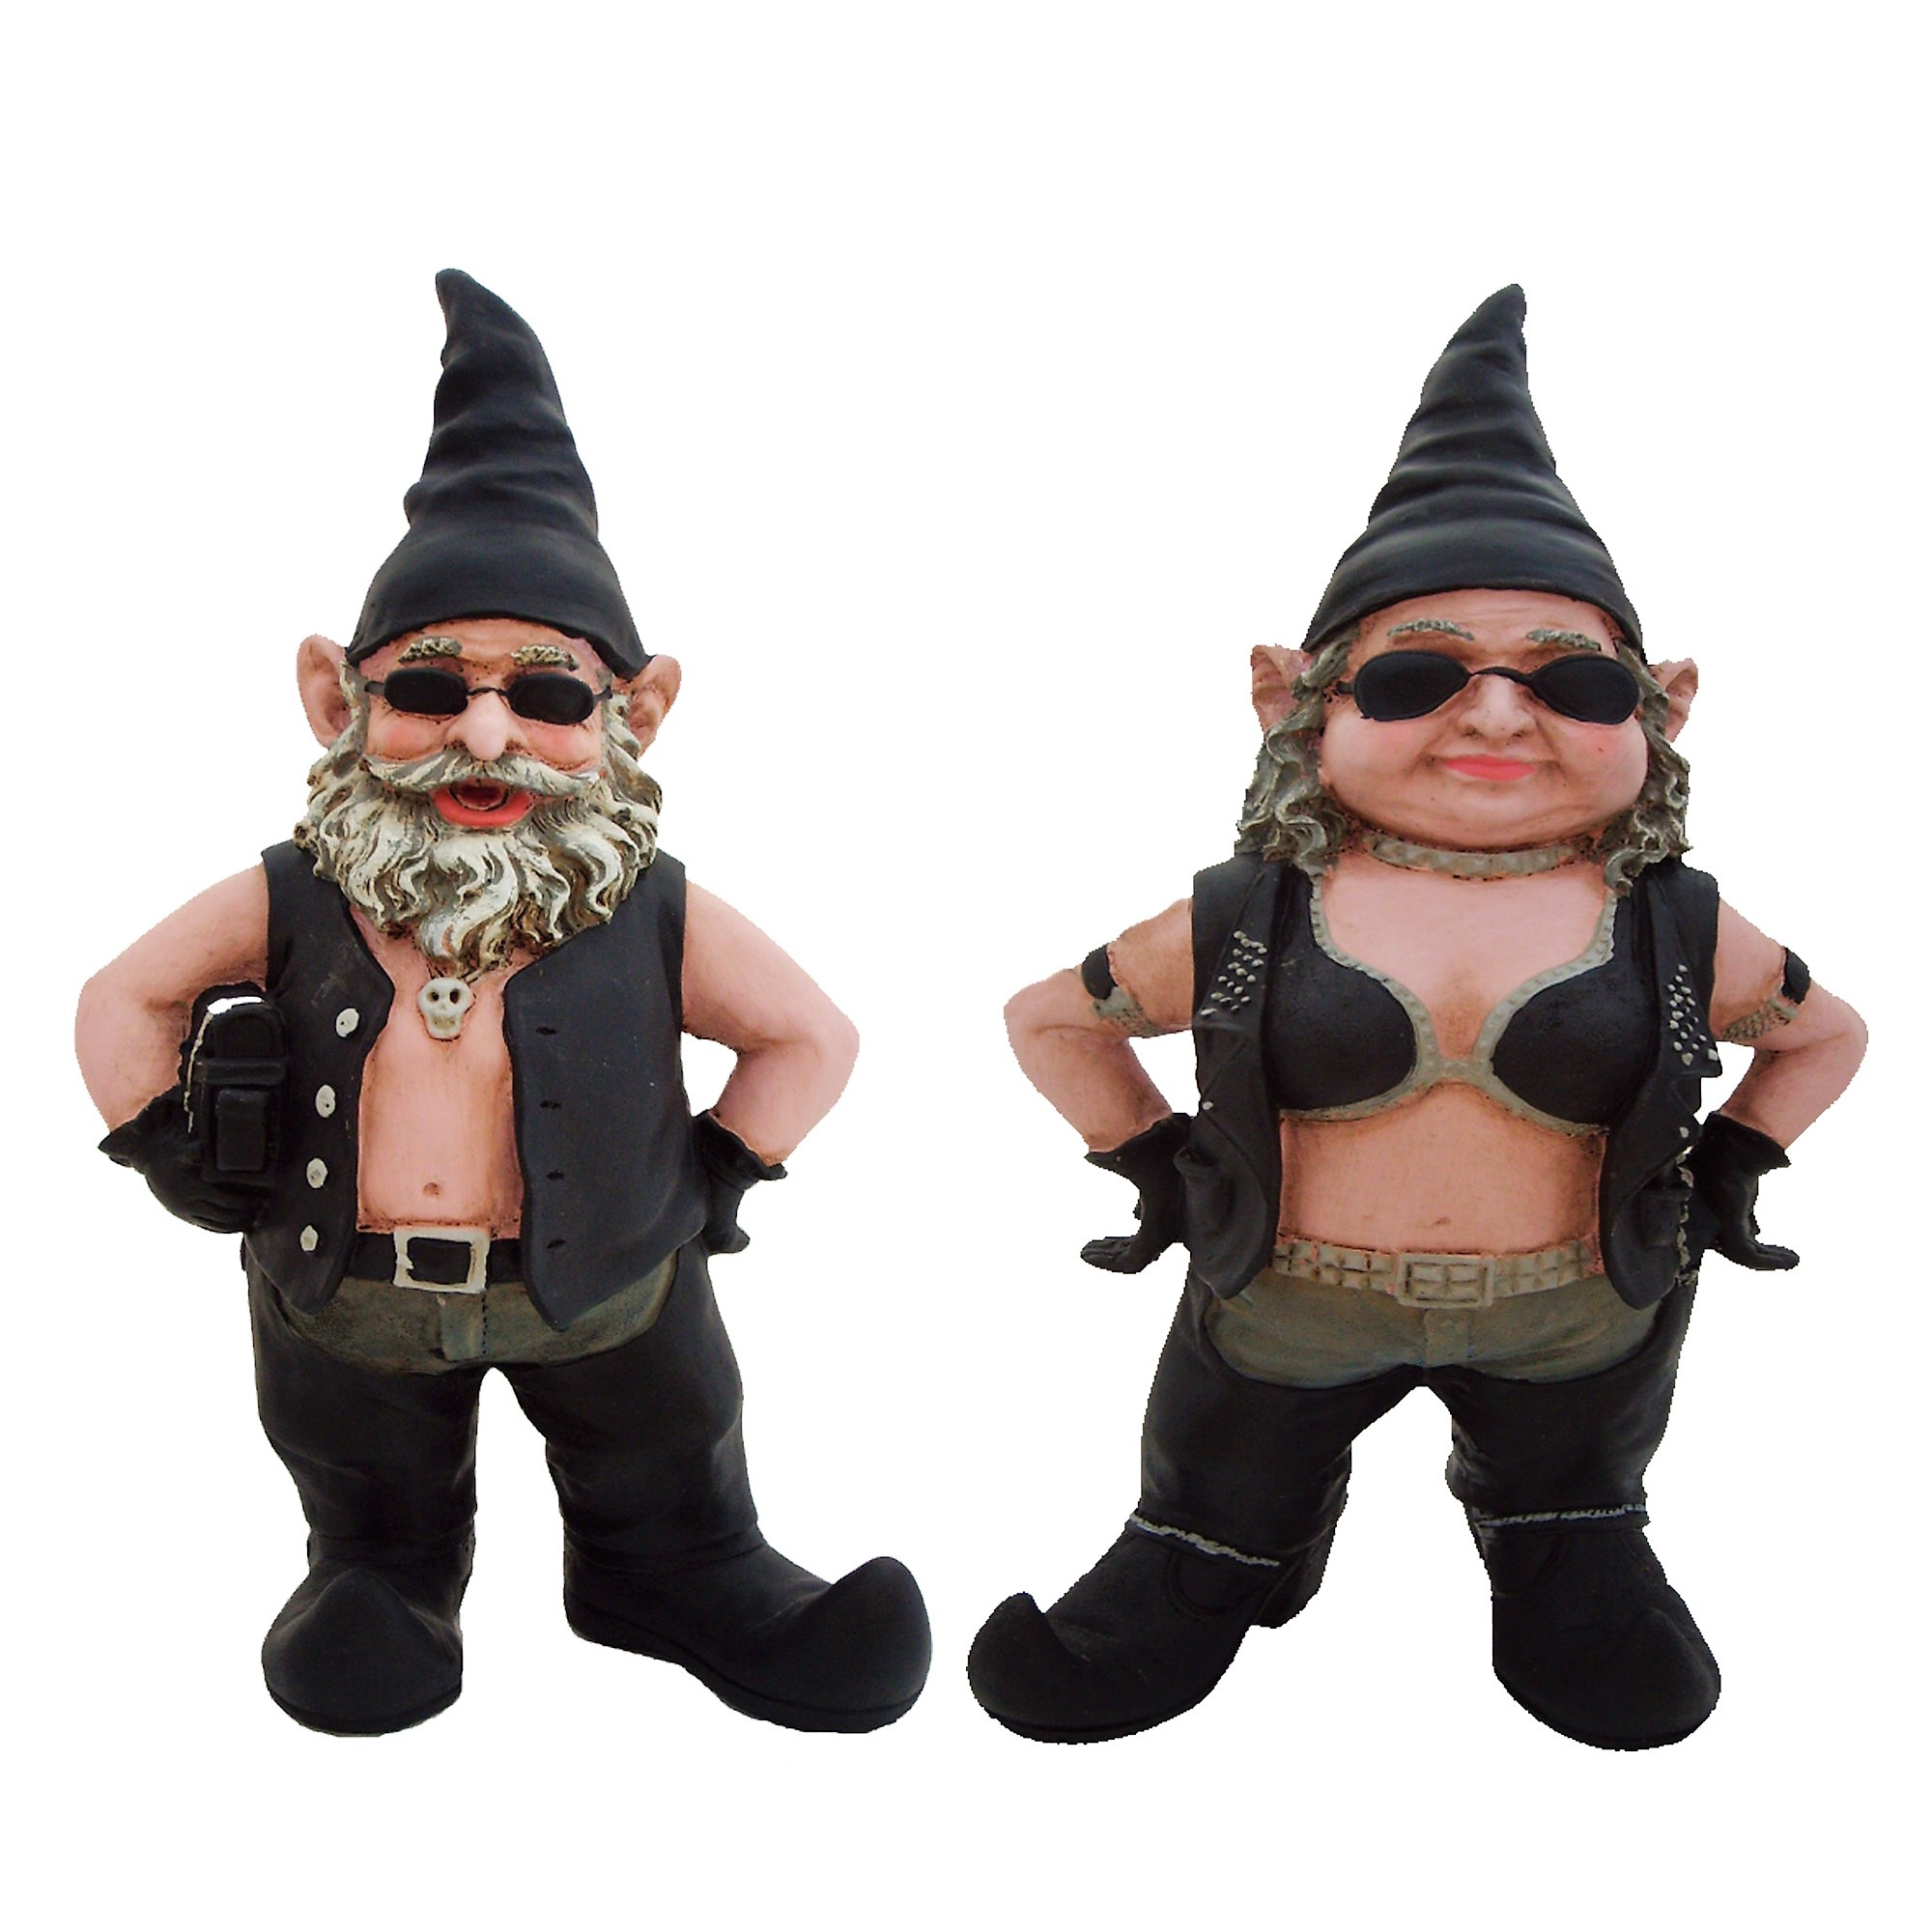 """Nowaday Gnomes """"Biker Dude & Babe"""" the 20""""H Biker Gnomes in Leather Motorcycle Riding Gear Home... by GSI Homestyles"""